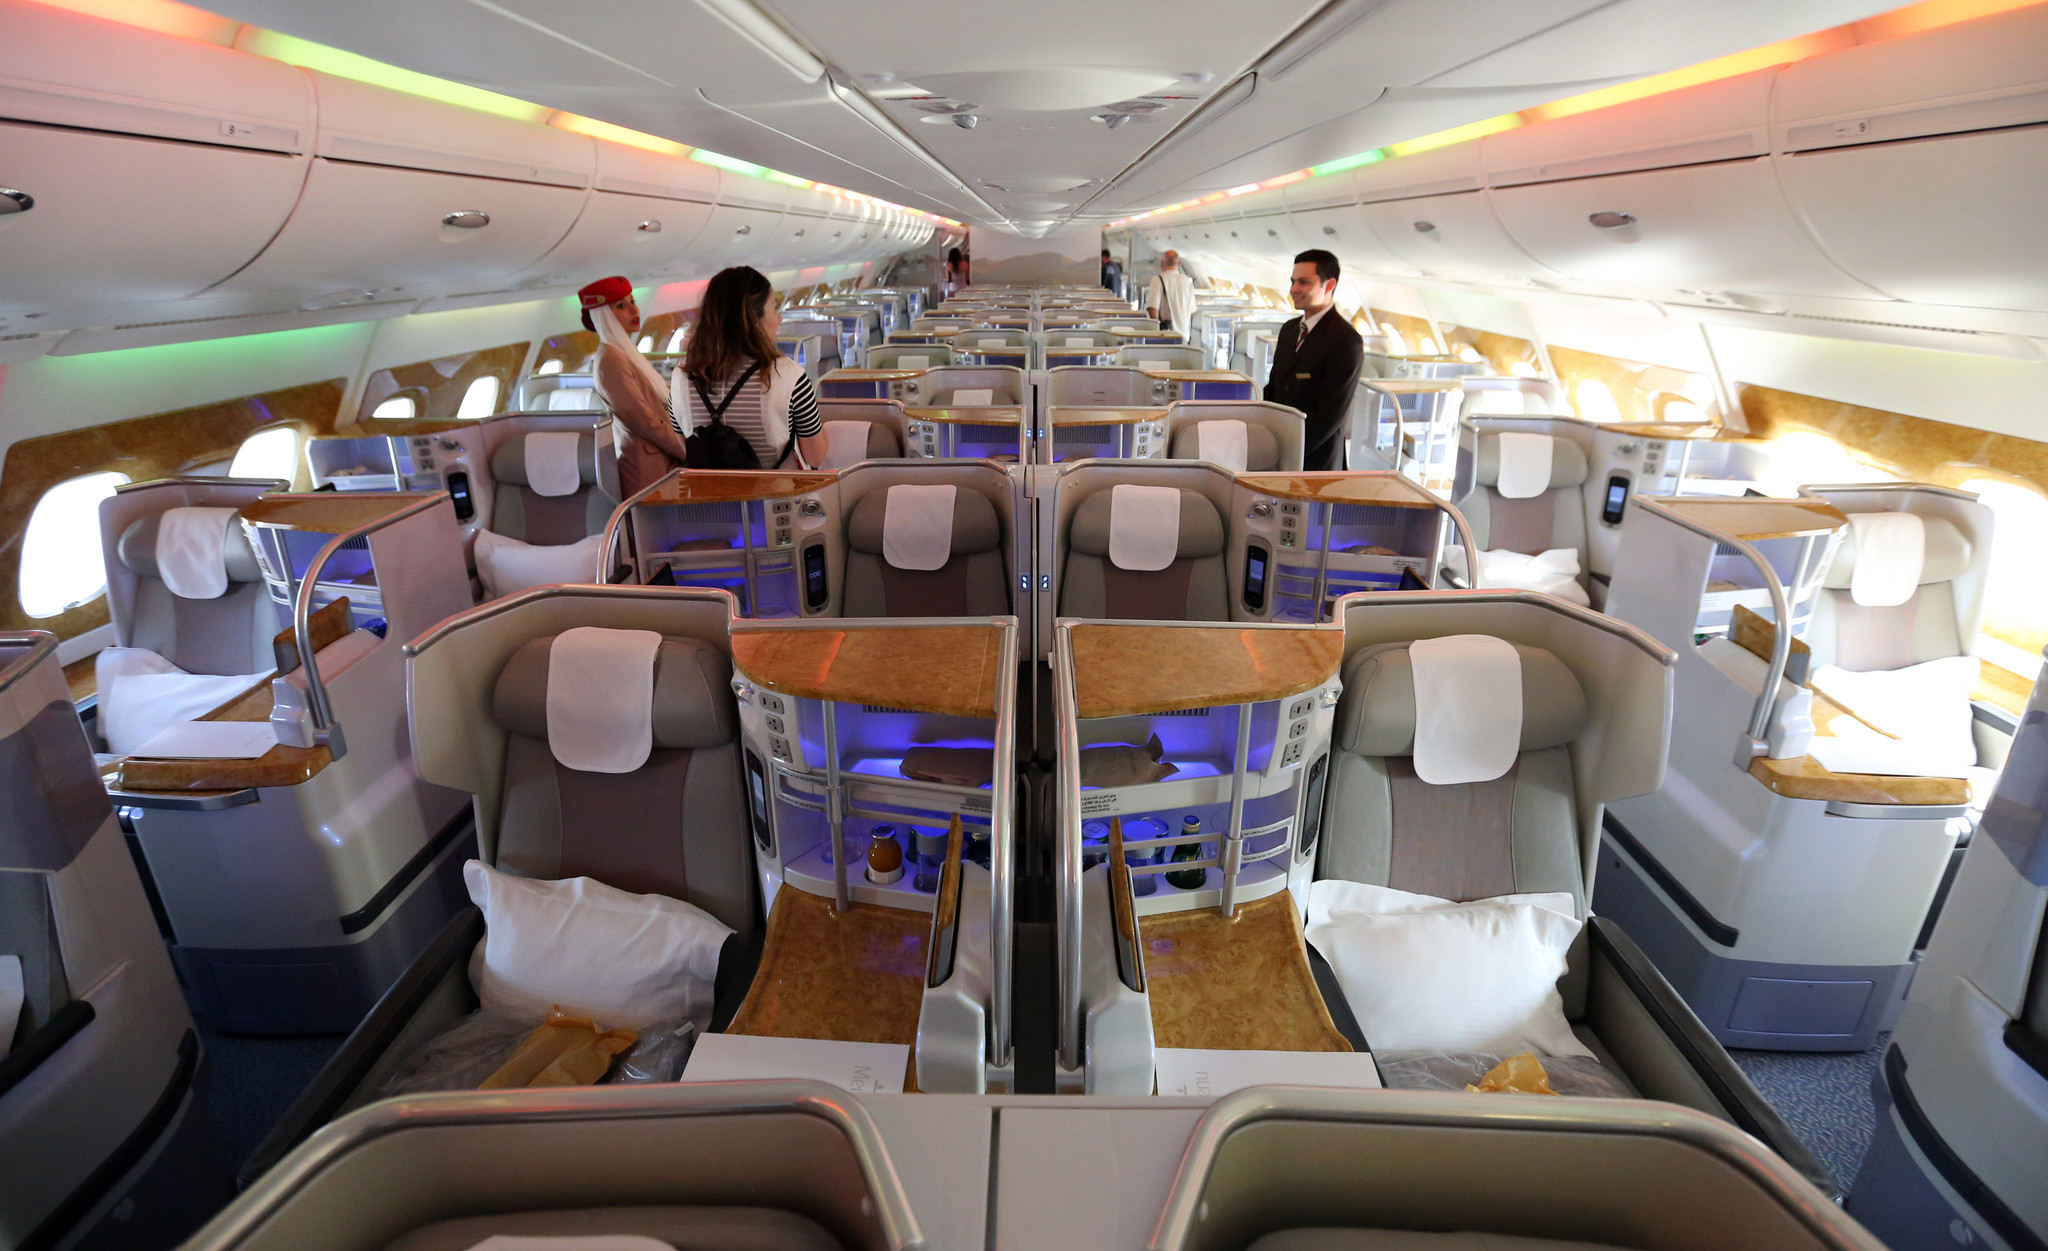 A380 Visits Chicago Will Jet With 2 Decks First Class